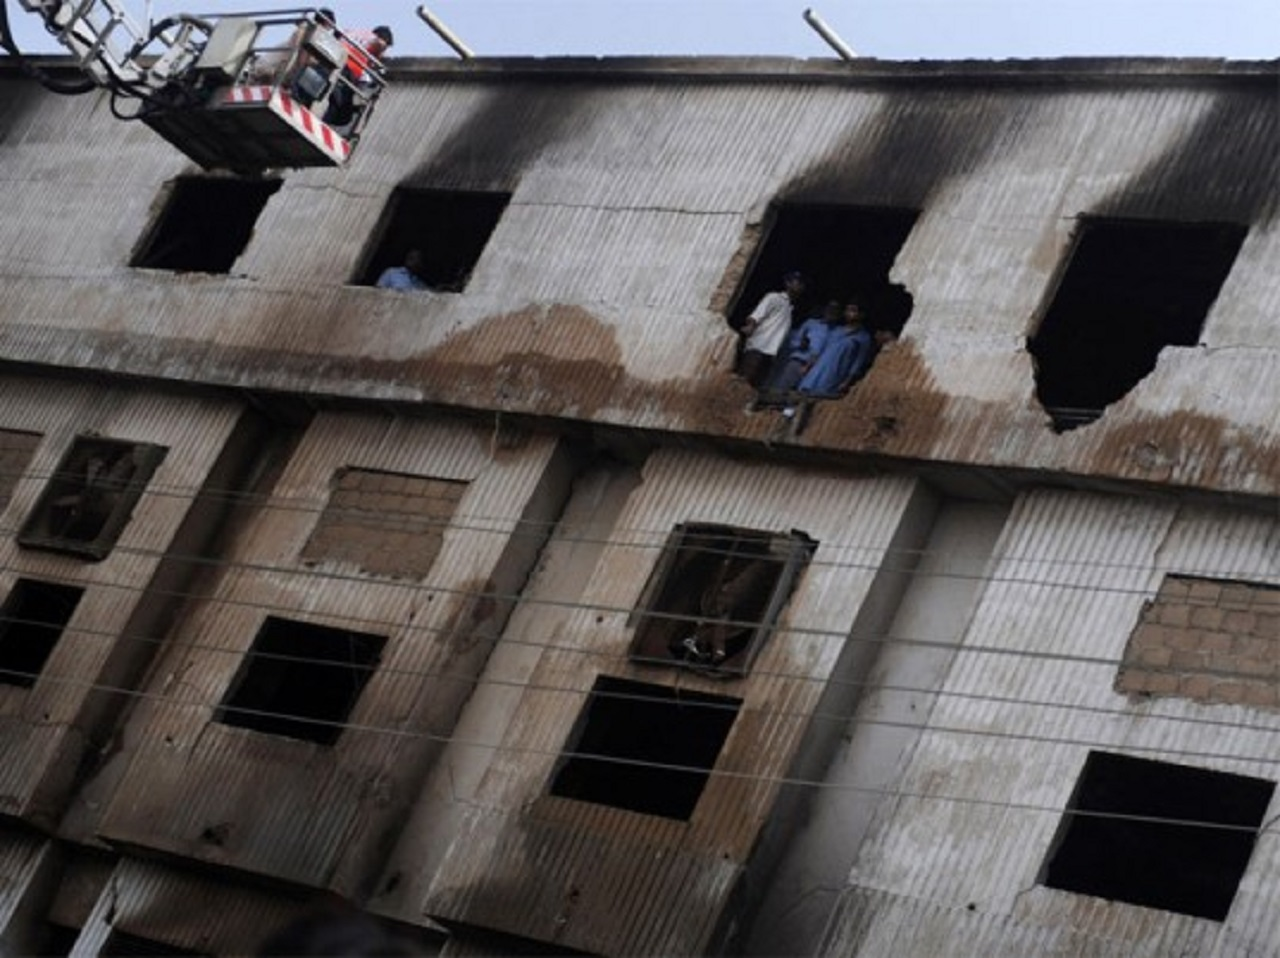 Victims of Ali Enterprises factory fire in Pakistan to sue KiK in